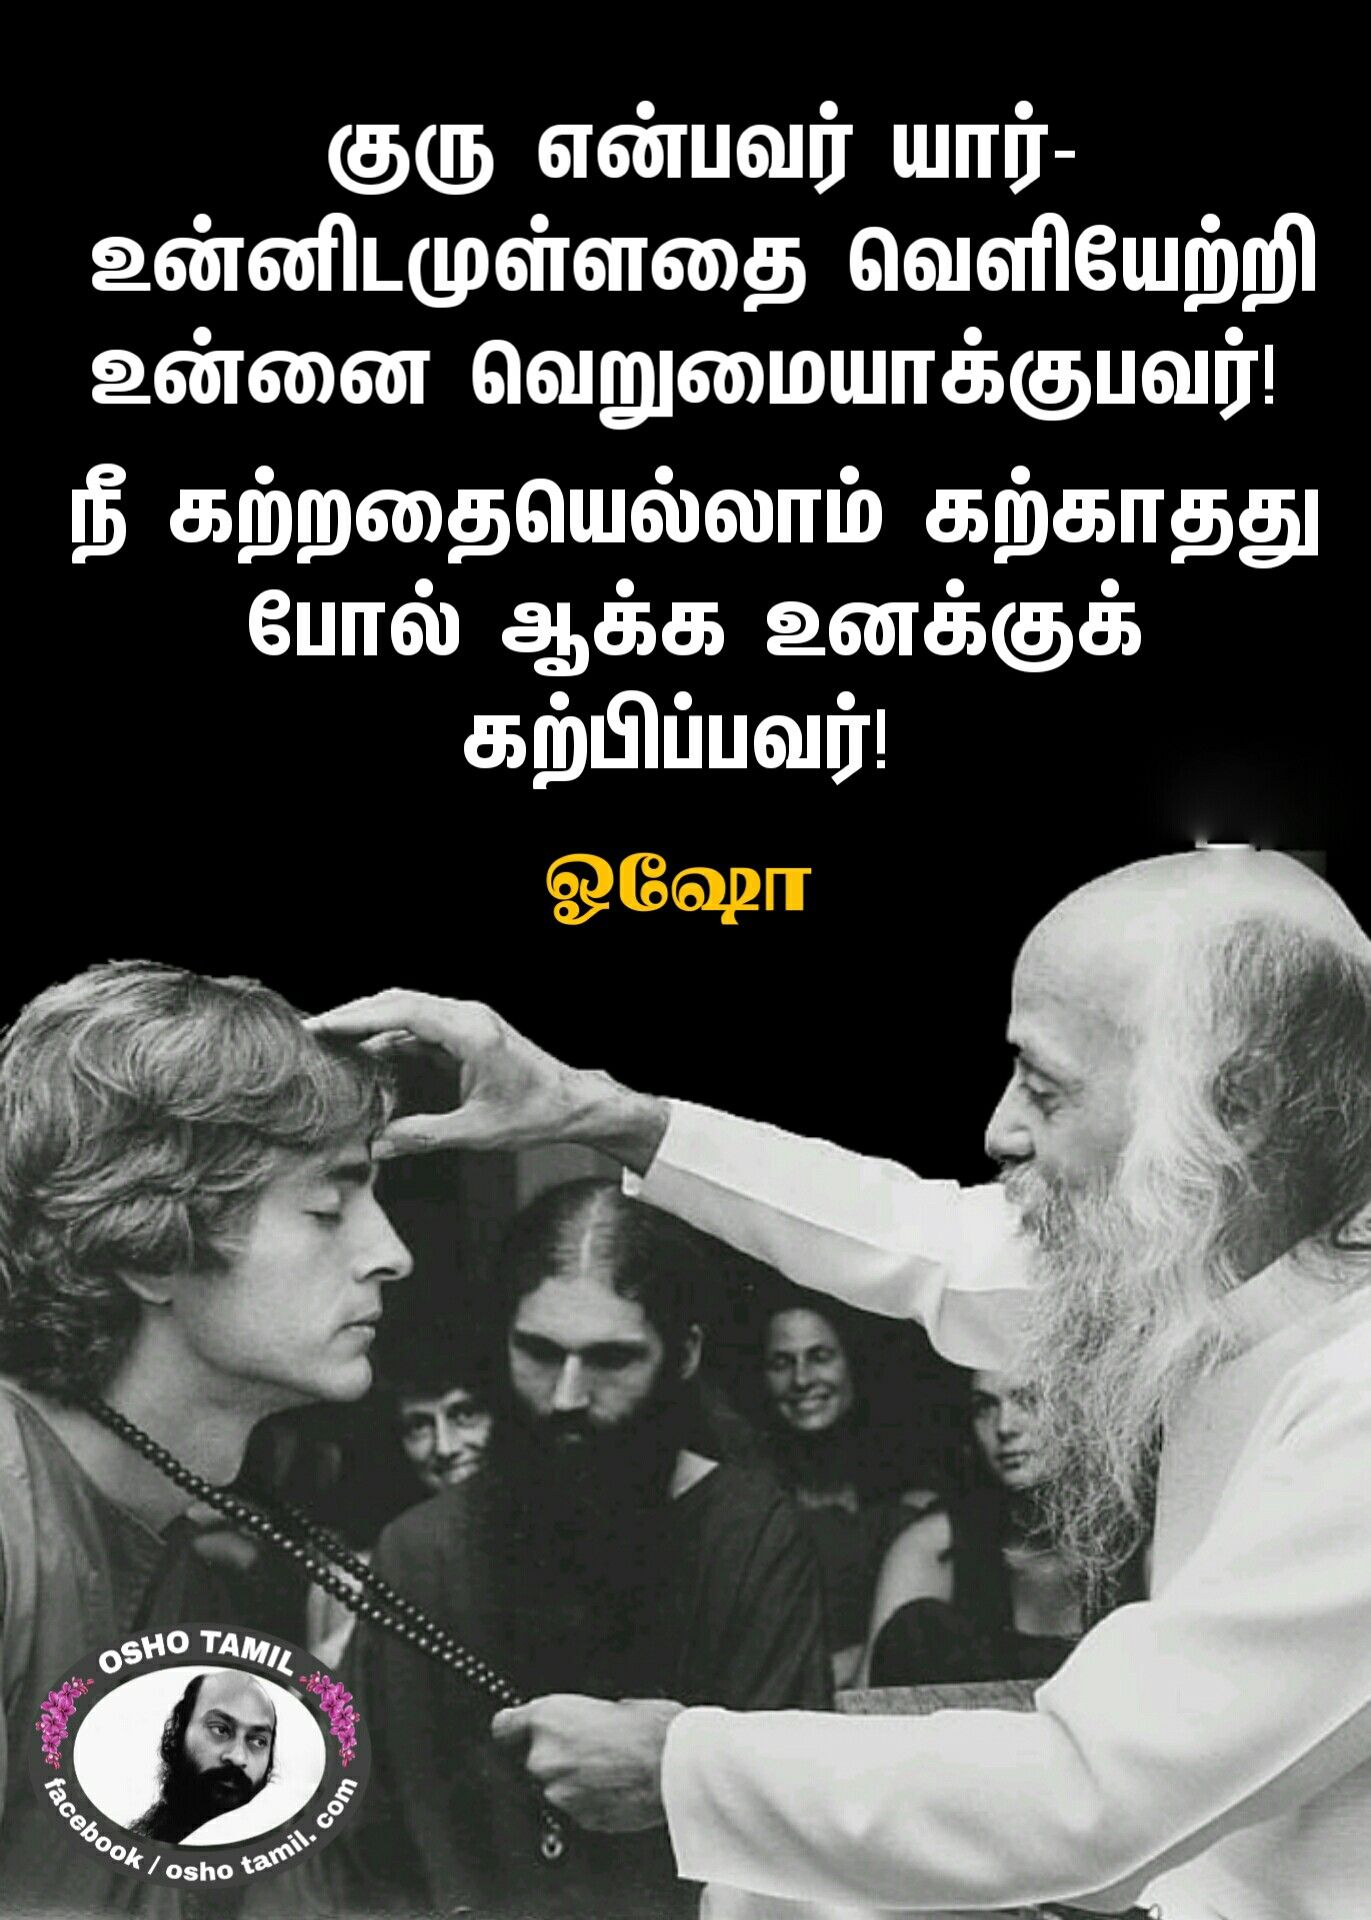 Pin by Osho tamil on osho tamil quotes Positive morning